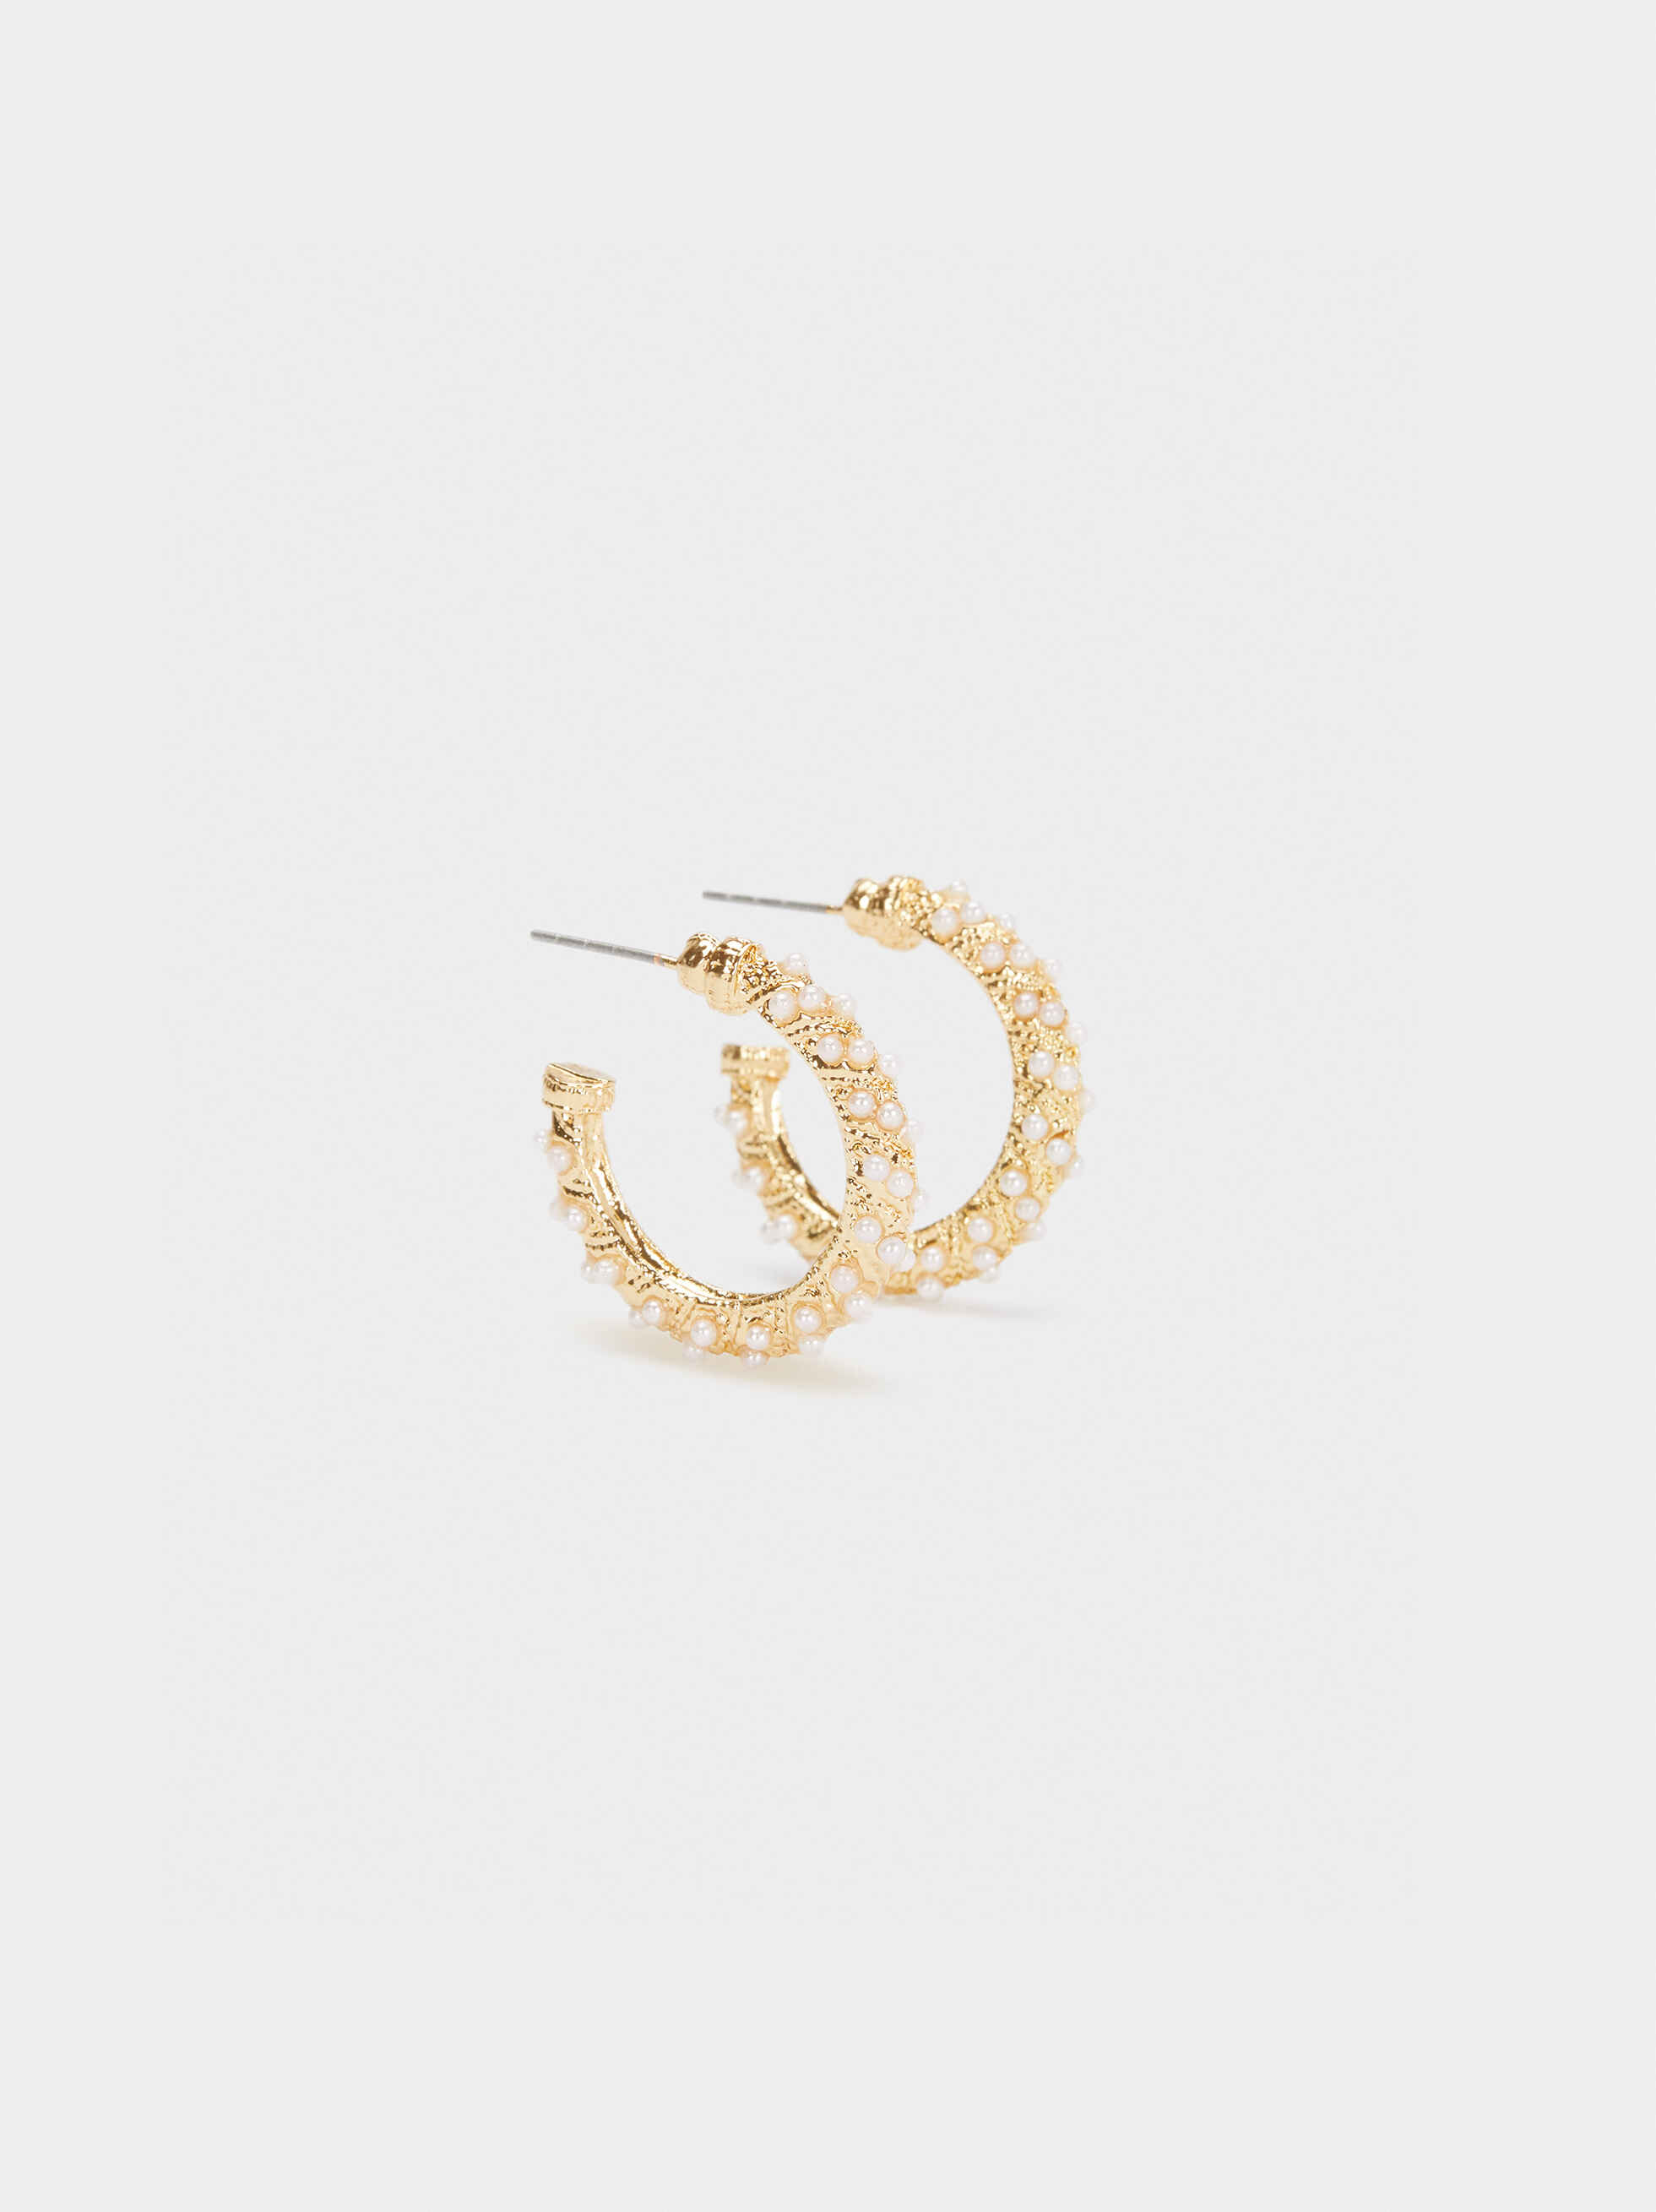 Small Gold Hoop Earrings With Crystal Detail, Golden, hi-res